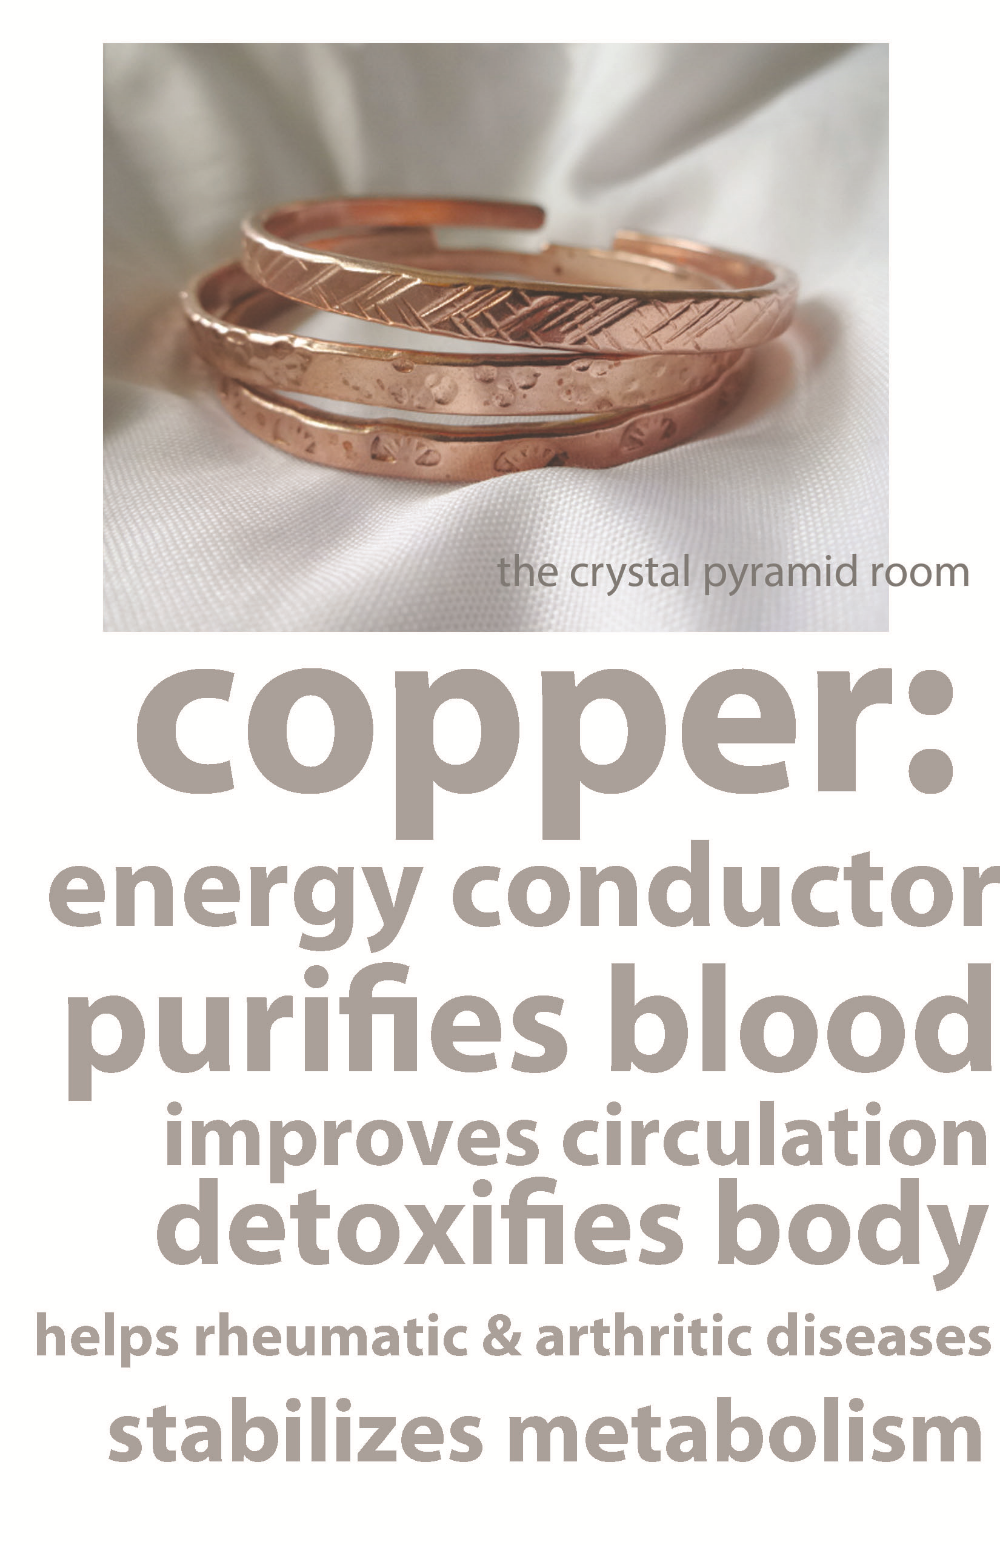 AboutCopper